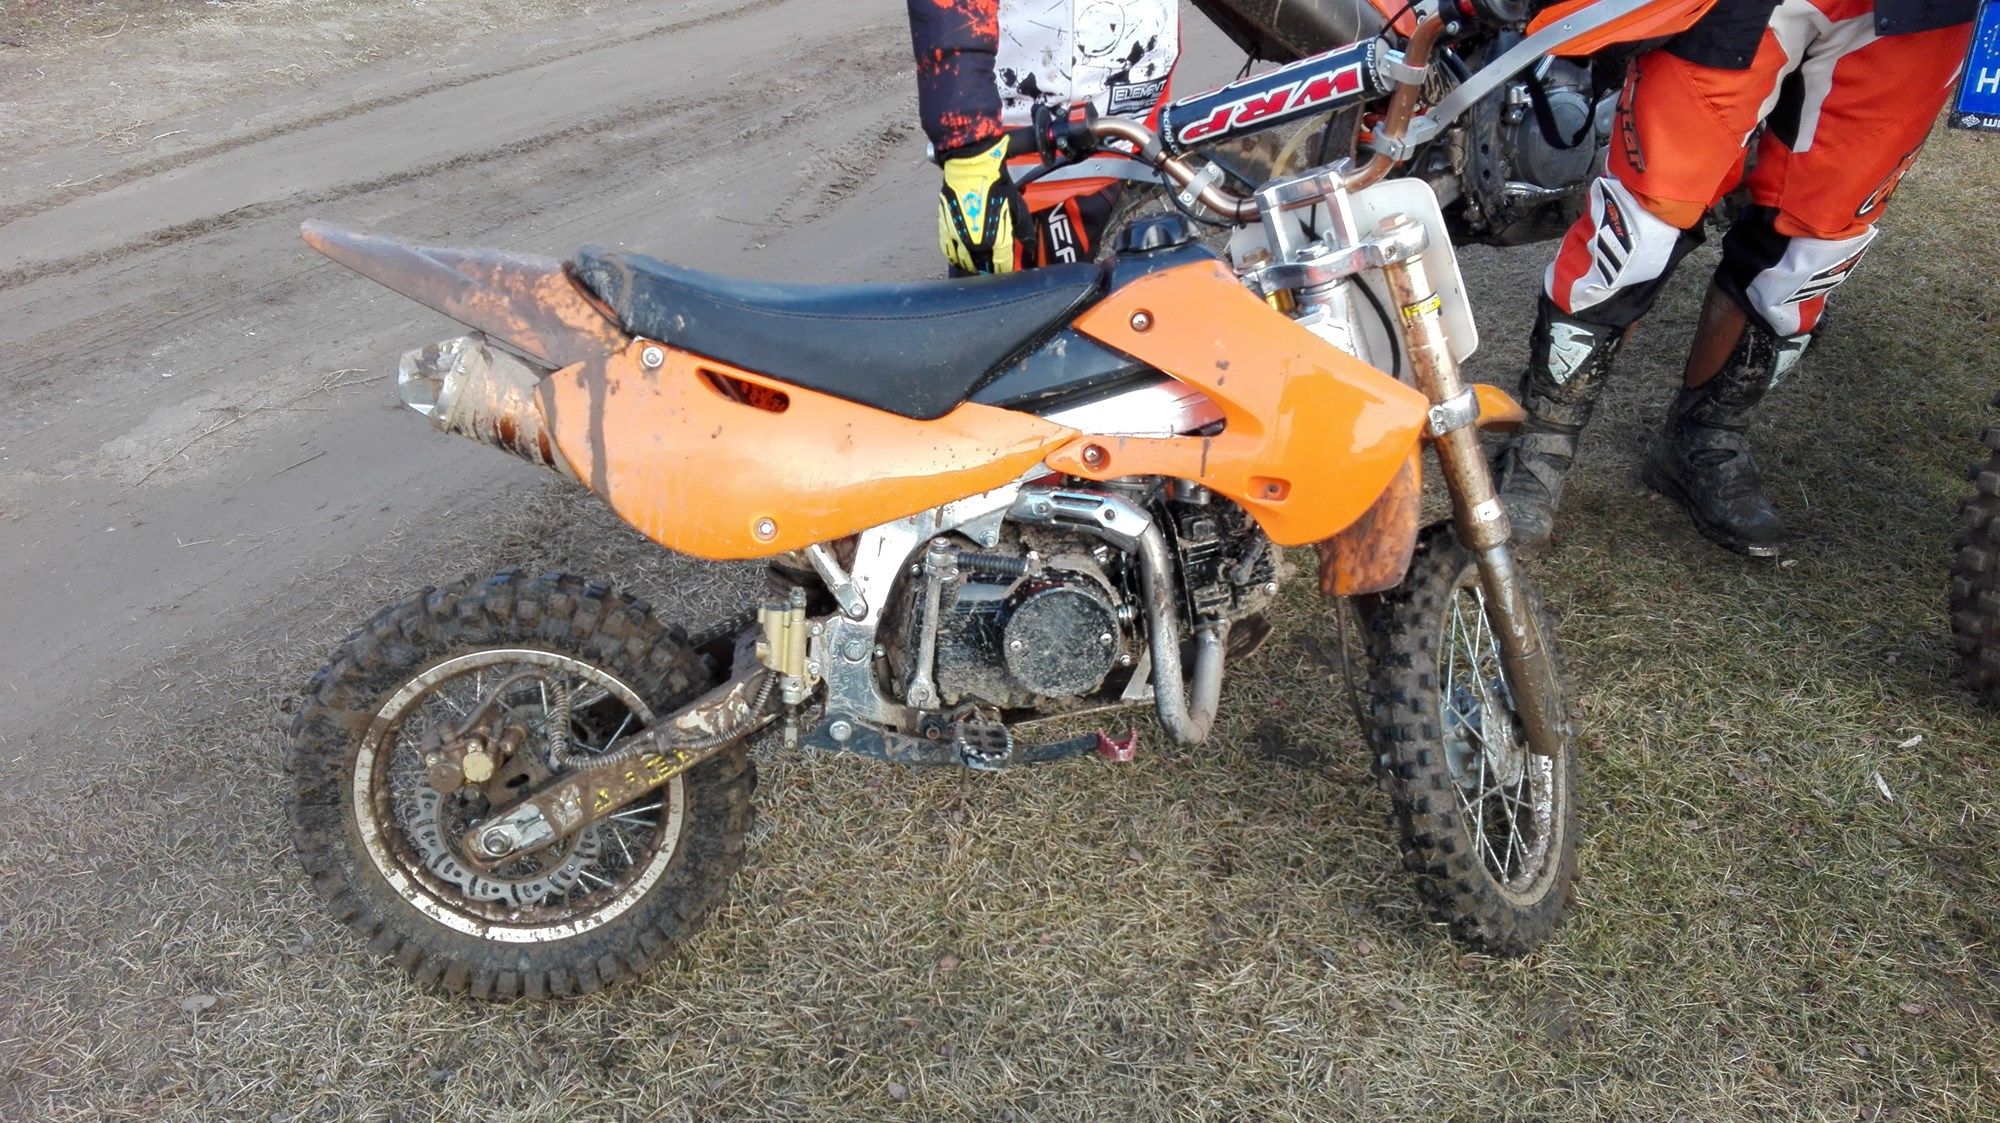 PITBIKE CROSS, 2. kép